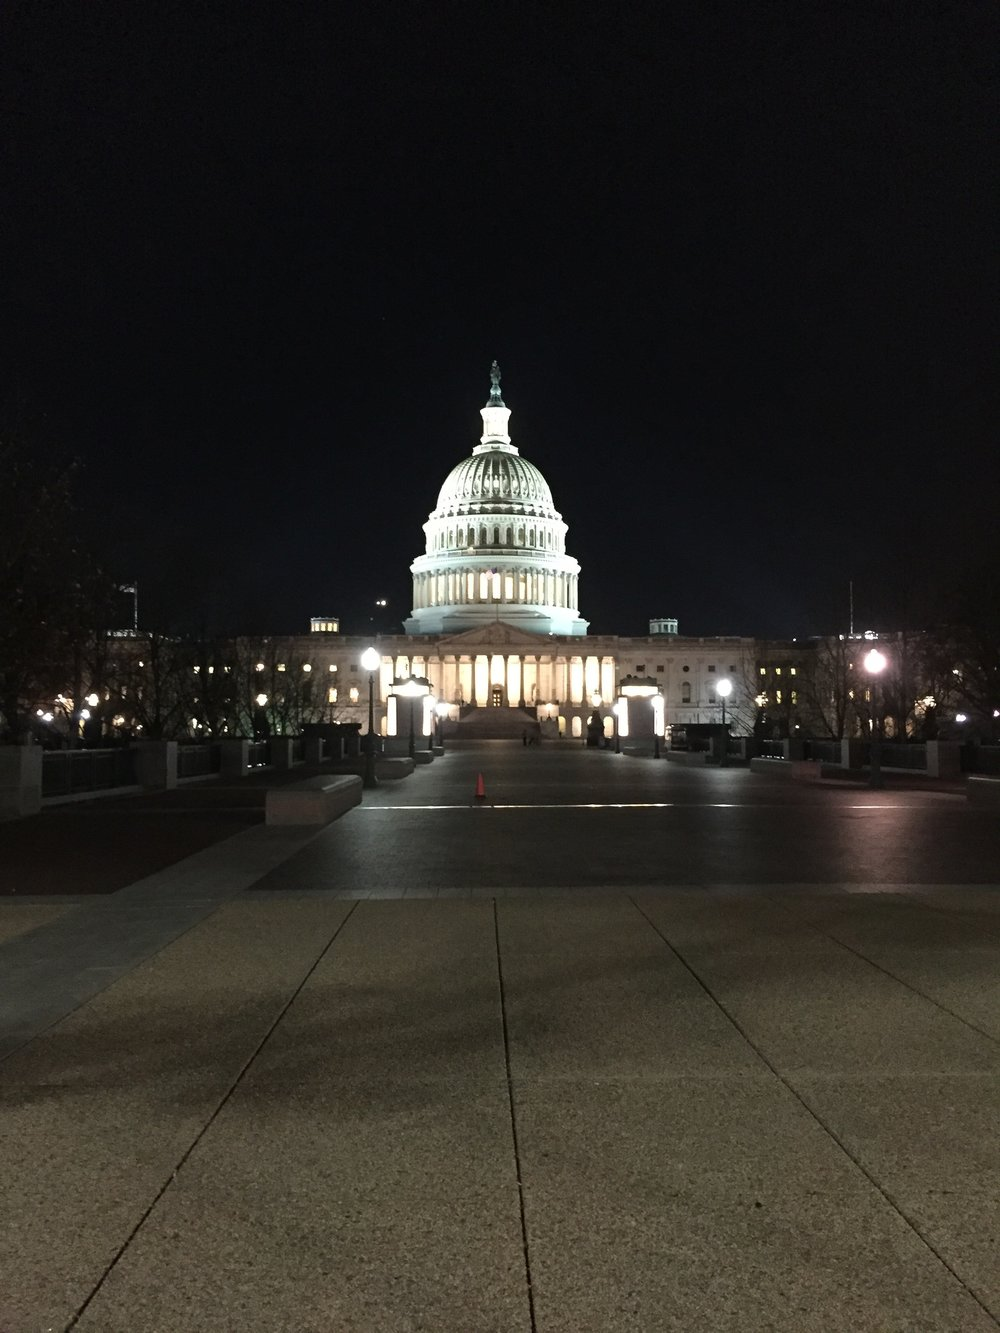 The Capitol Building at night. Image by Rachel Hammersley.